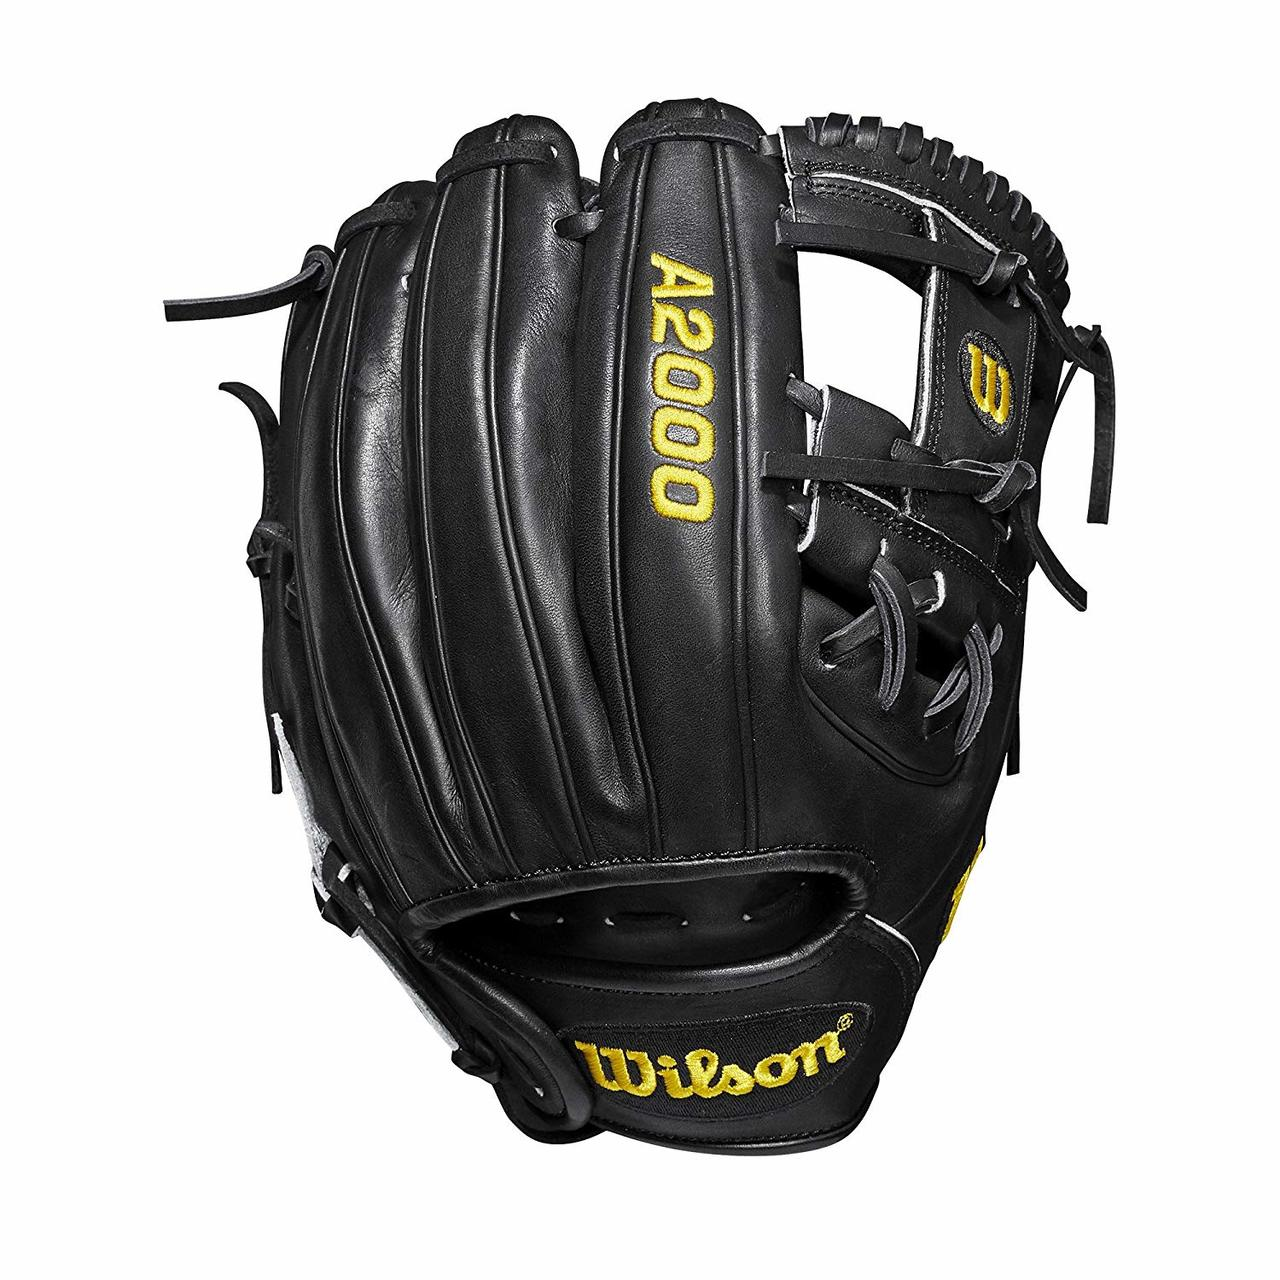 wilson-a2000-dp15-pedroia-baseball-glove-2019-right-hand-throw-11-5 WTA20RB19DP15-RightHandThrow Wilson 887768732448 11.5 inch infield WTA20RB19DP15 Made with pedroia fit for players with